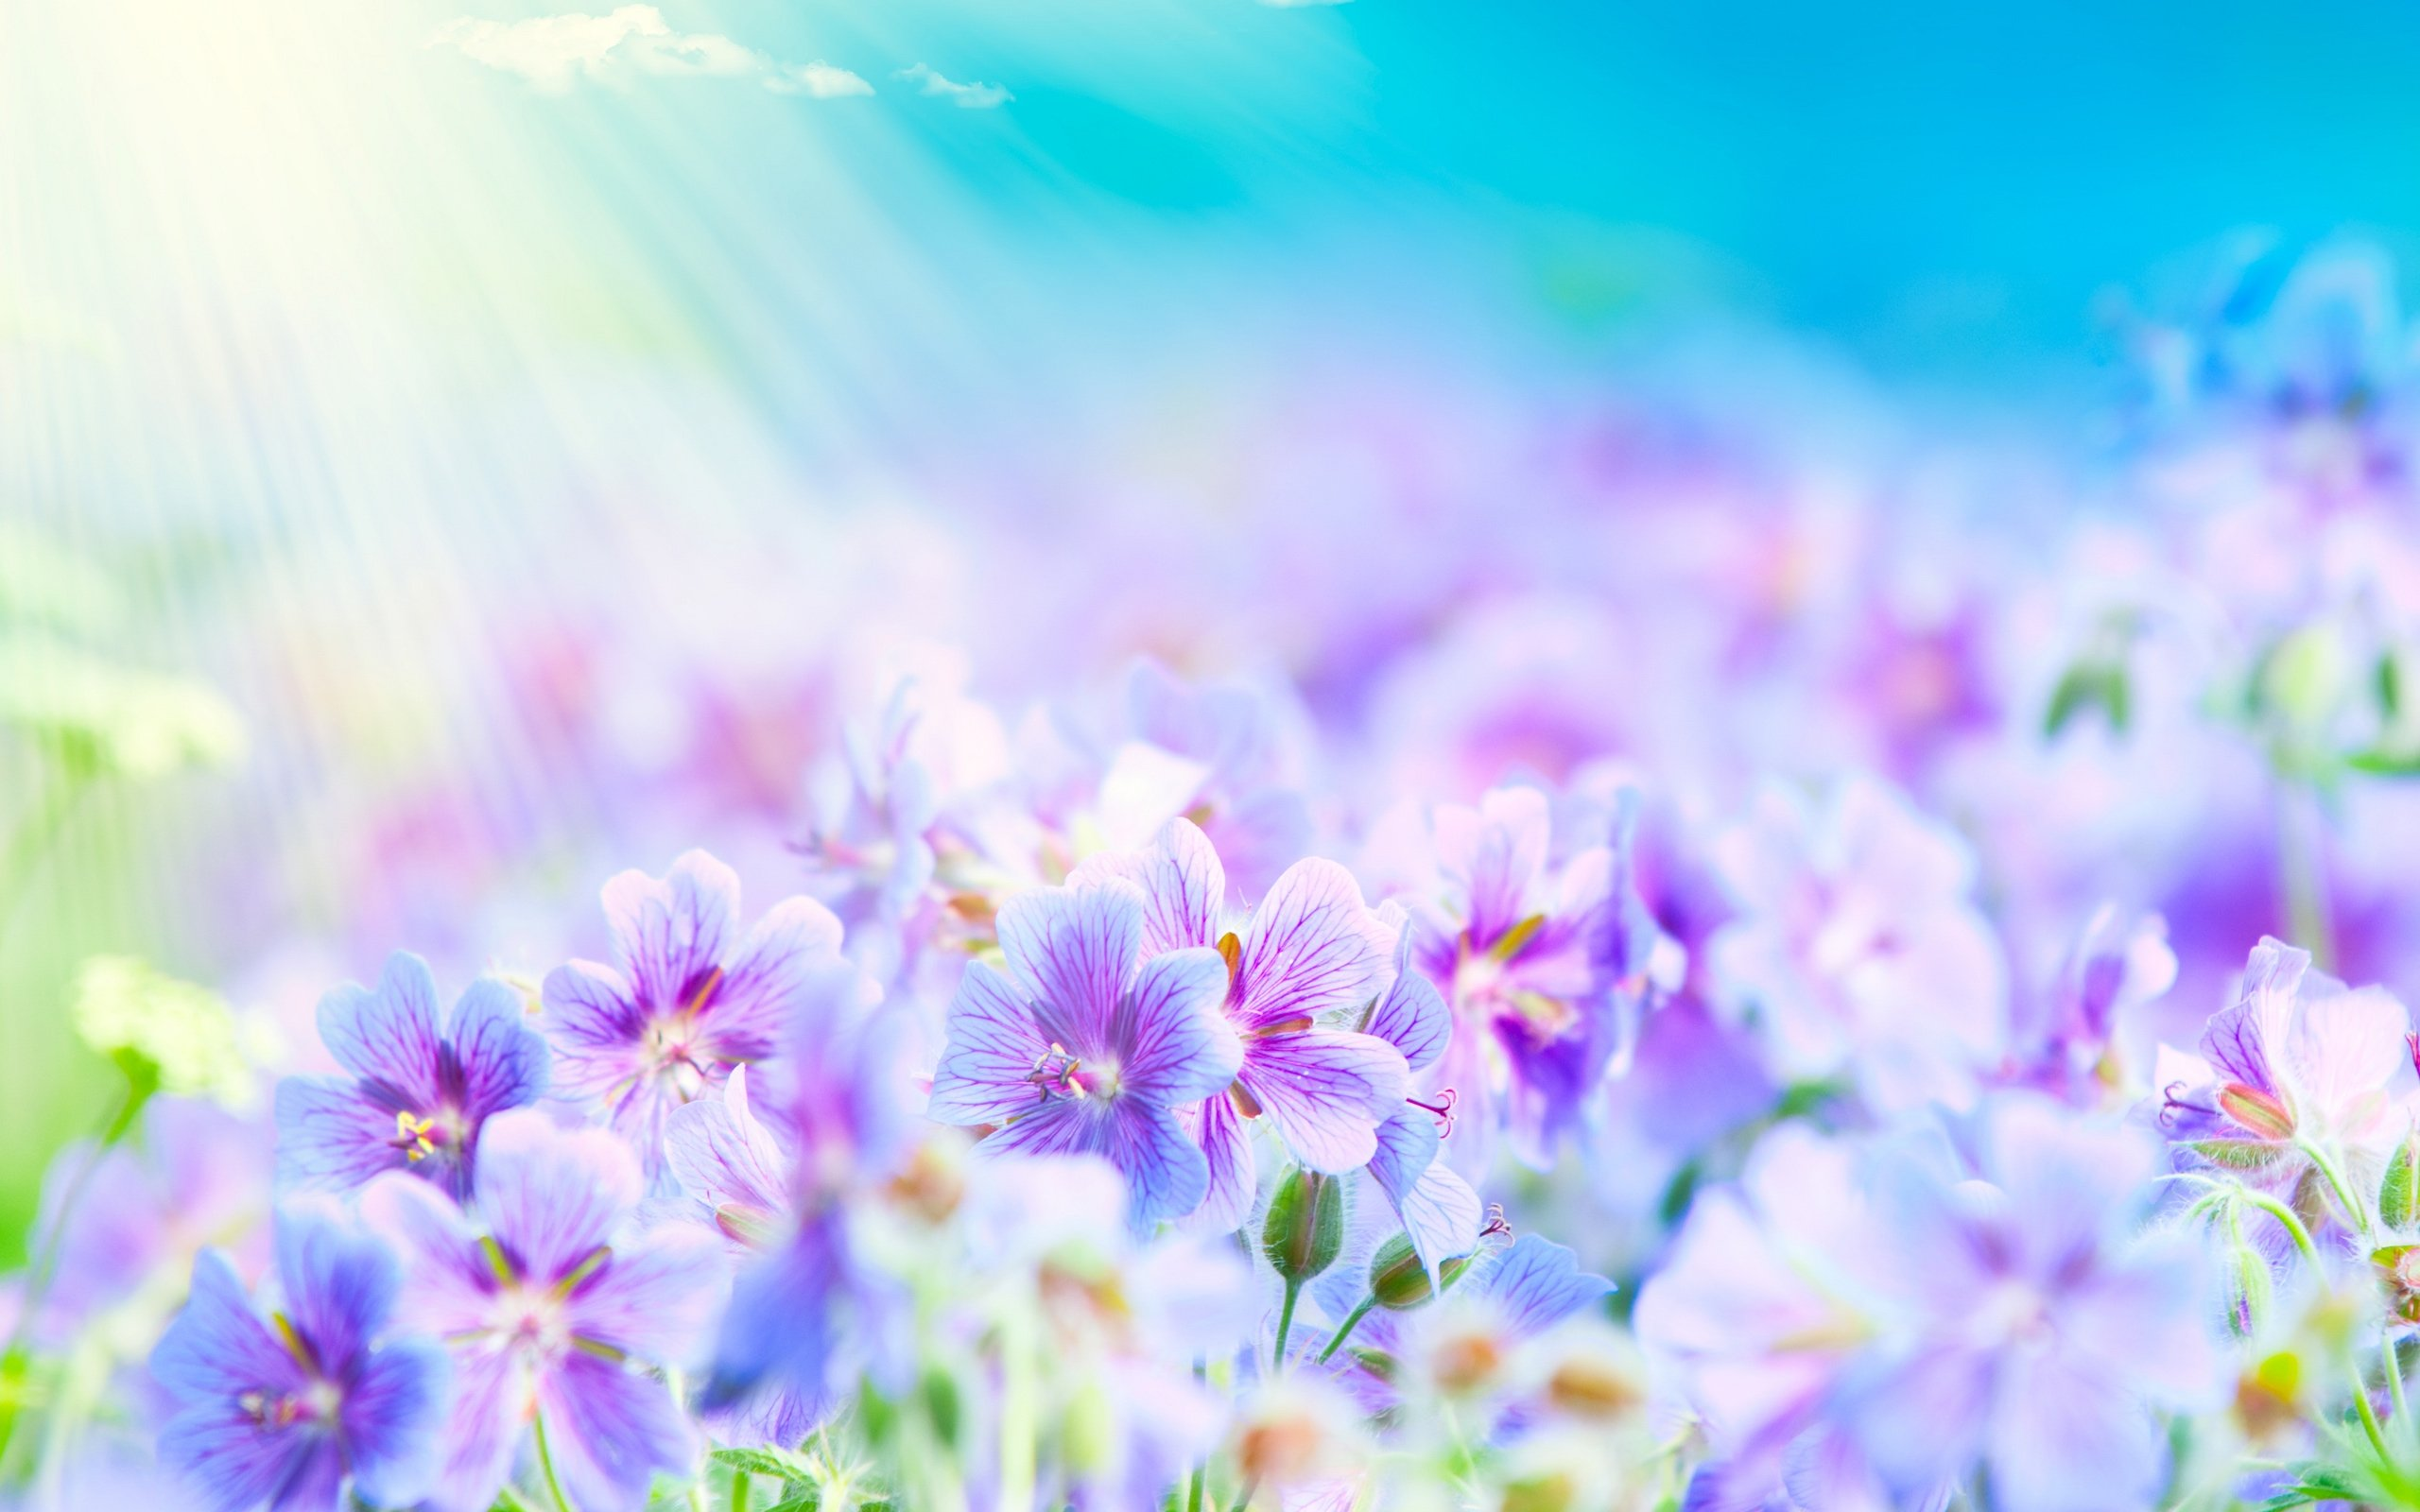 HD Flower Wallpaper Summer Flowers Wallpaper 2560x1600